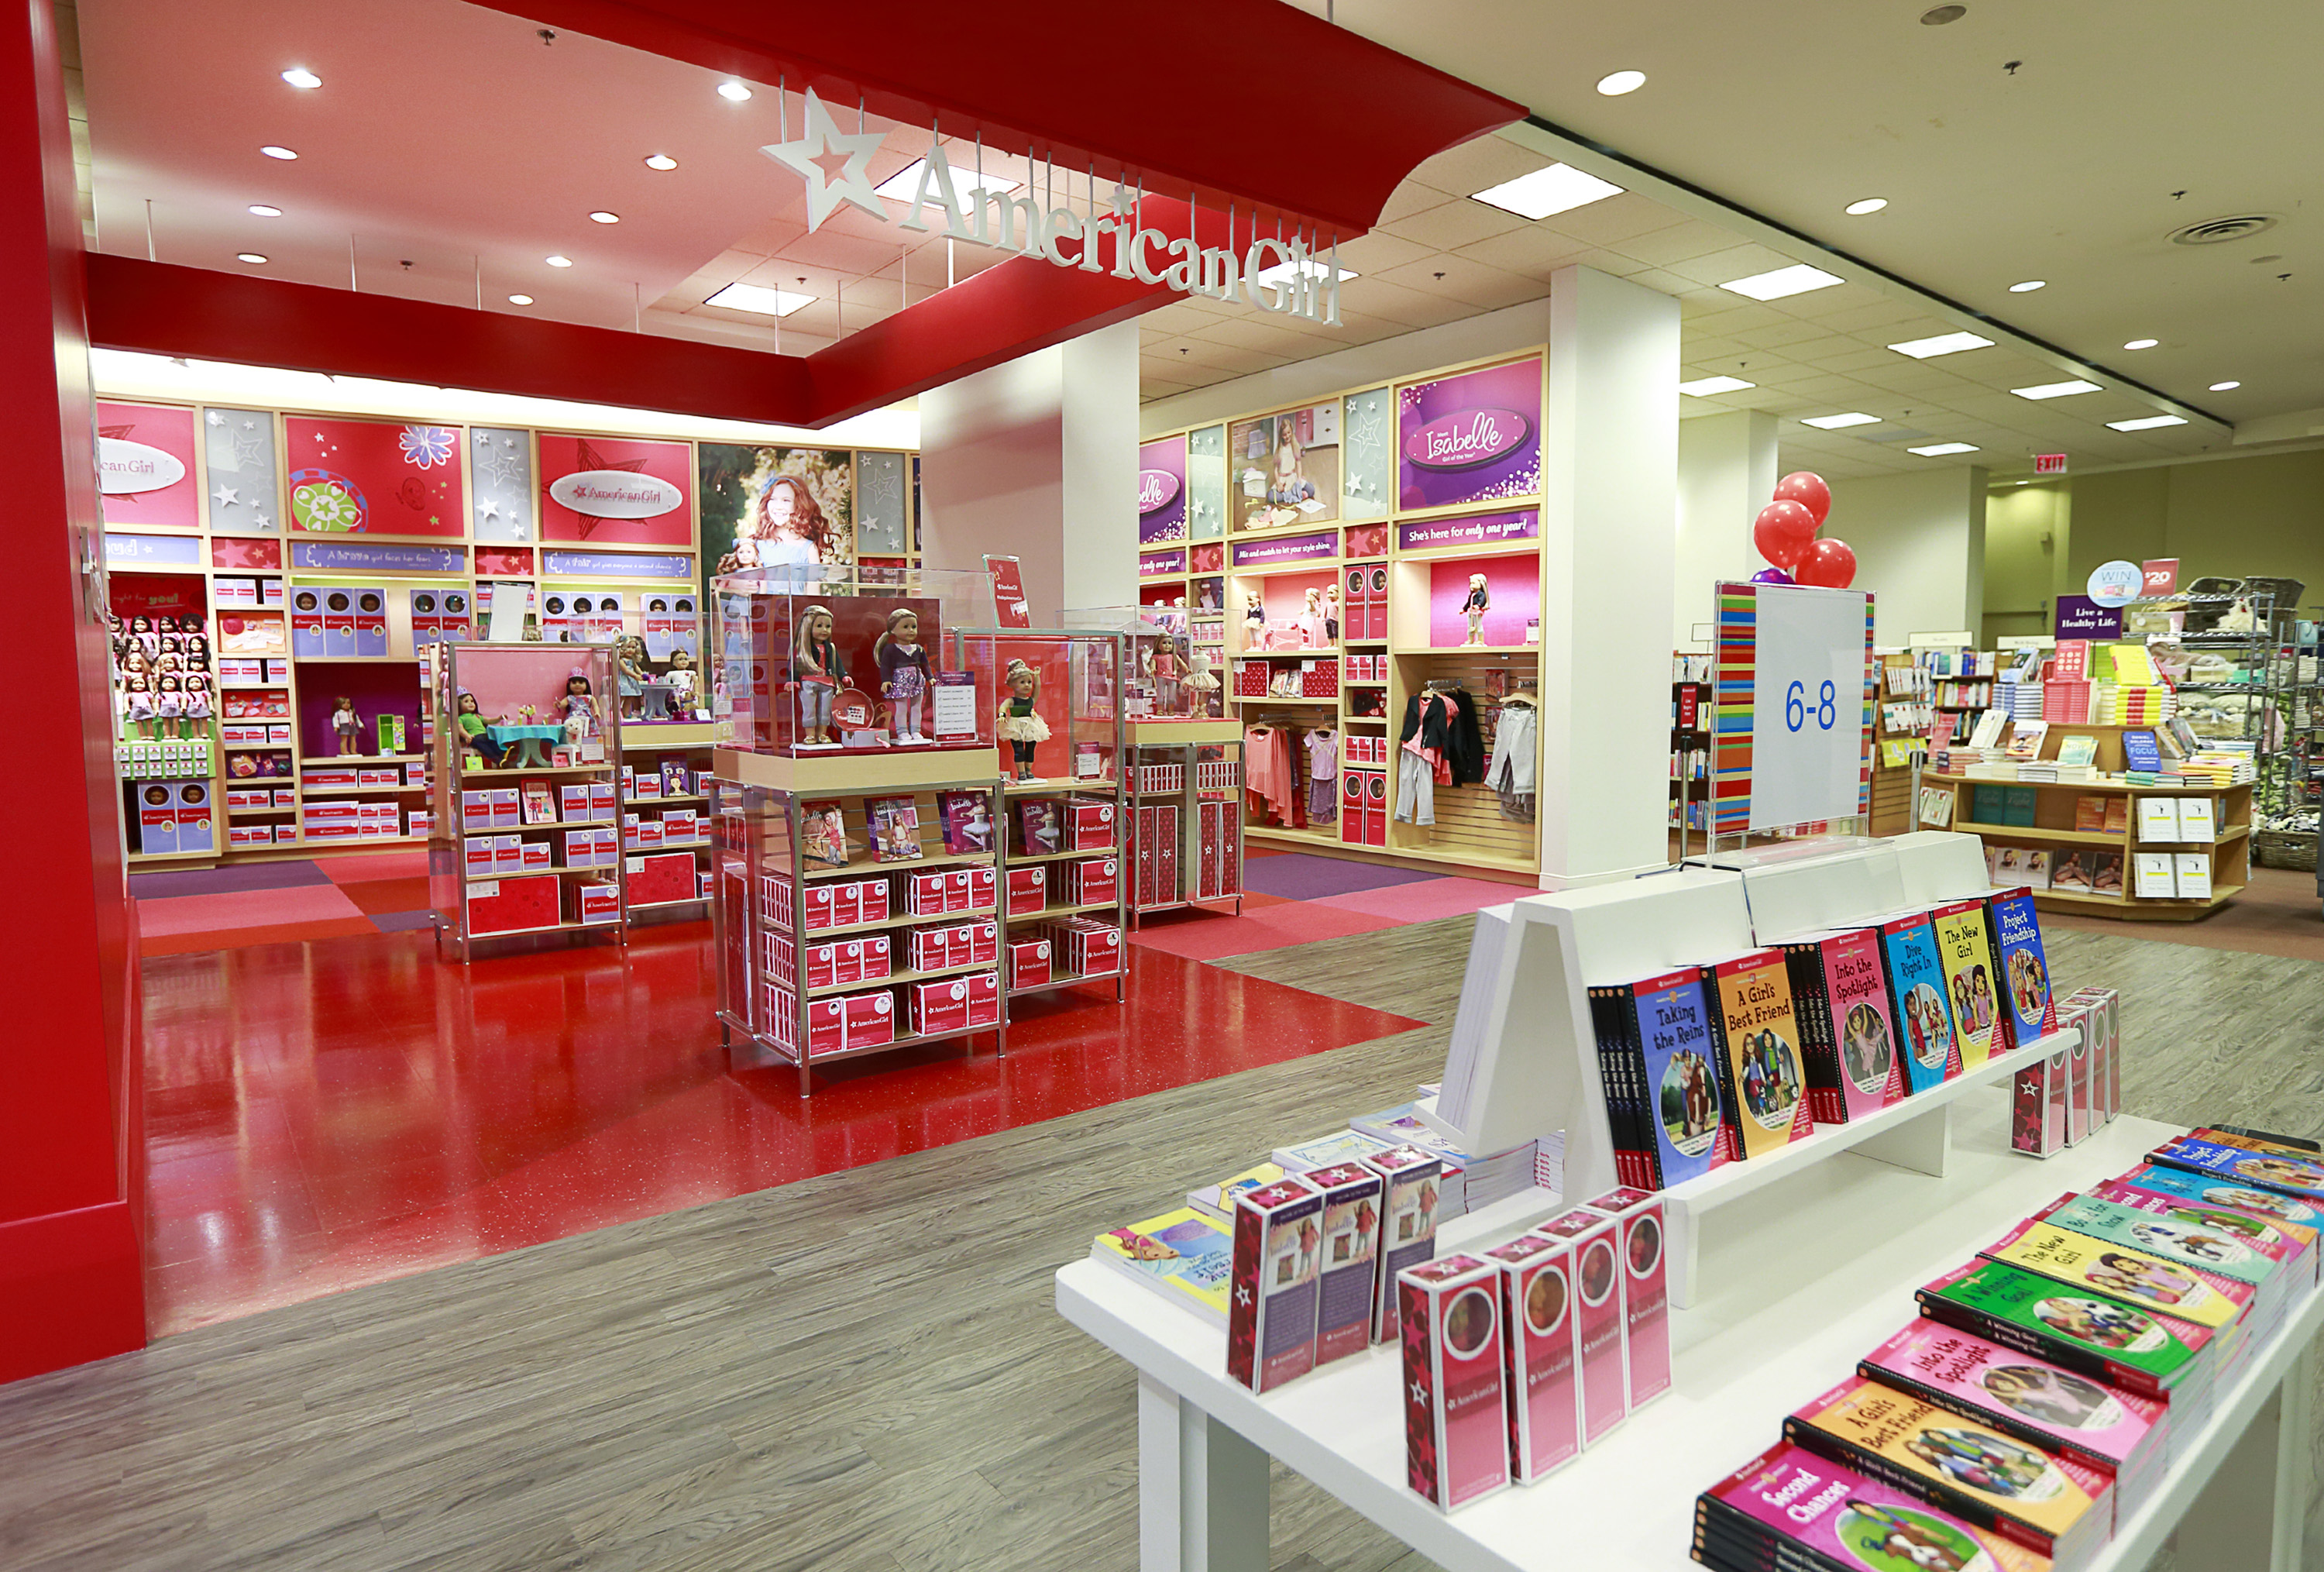 Launch of the American Girl store in Vancouver